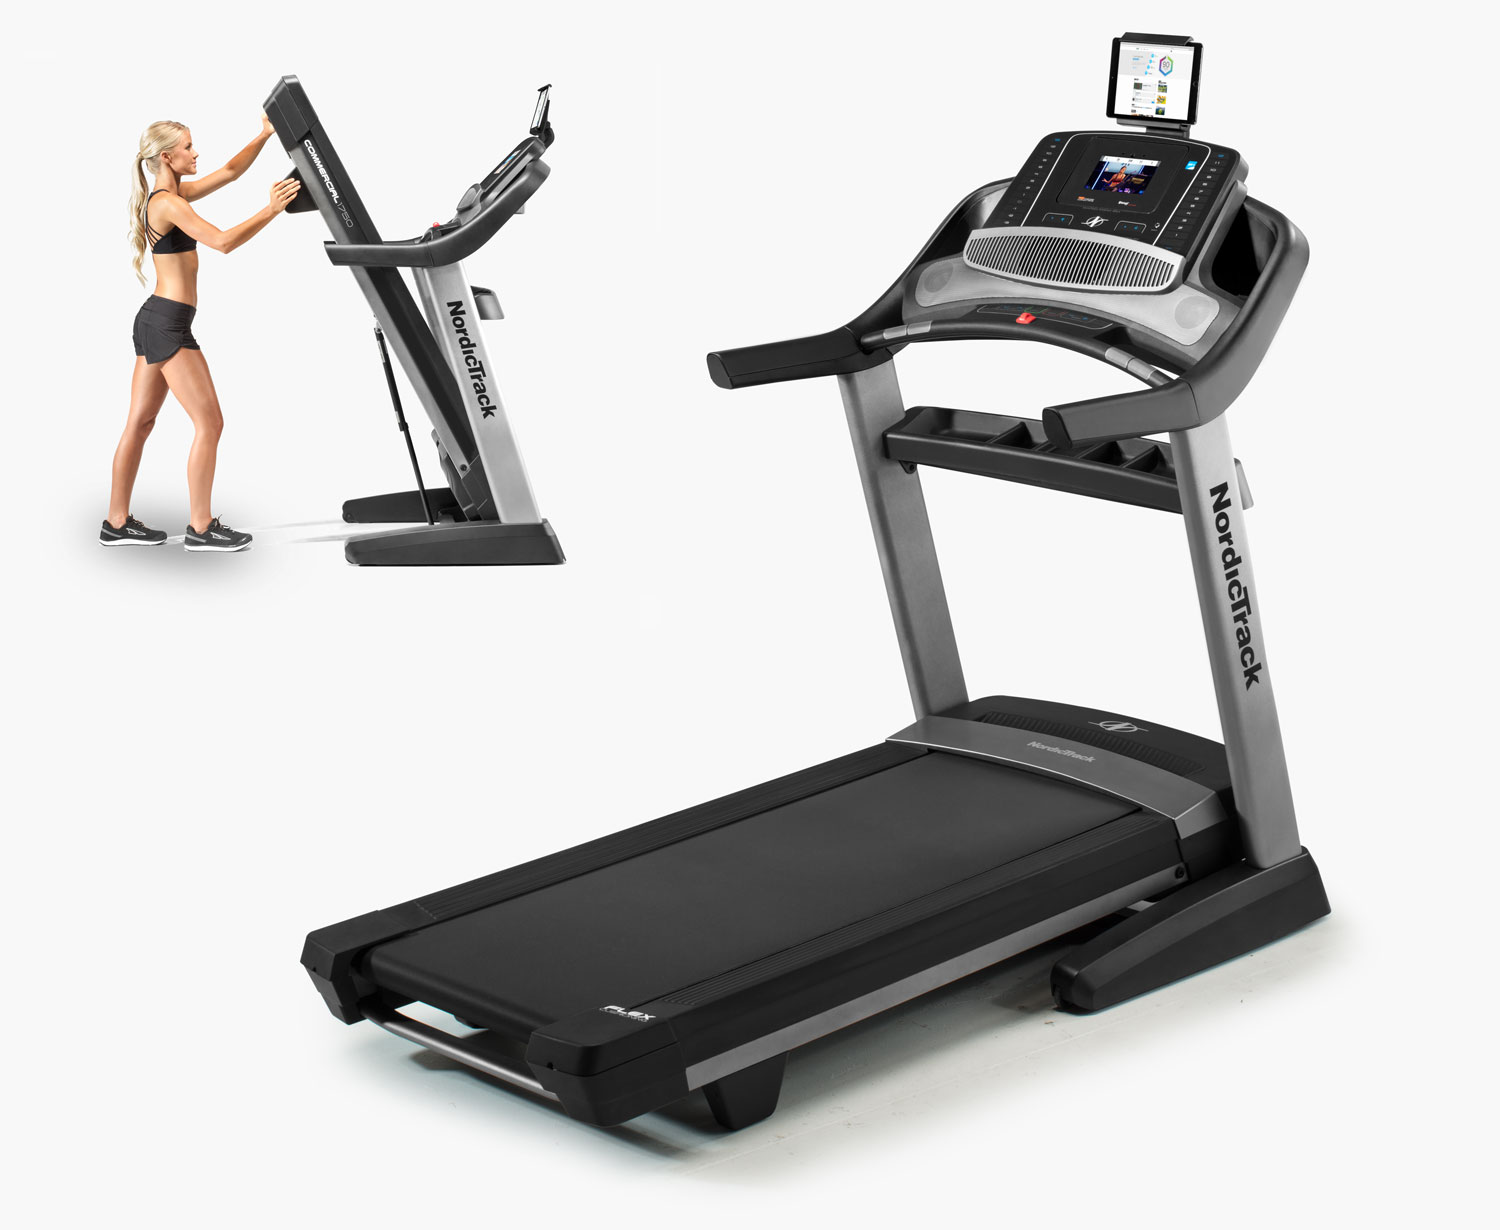 - Commercial 1750 TreadmillOur pick for long runs and multiple user use